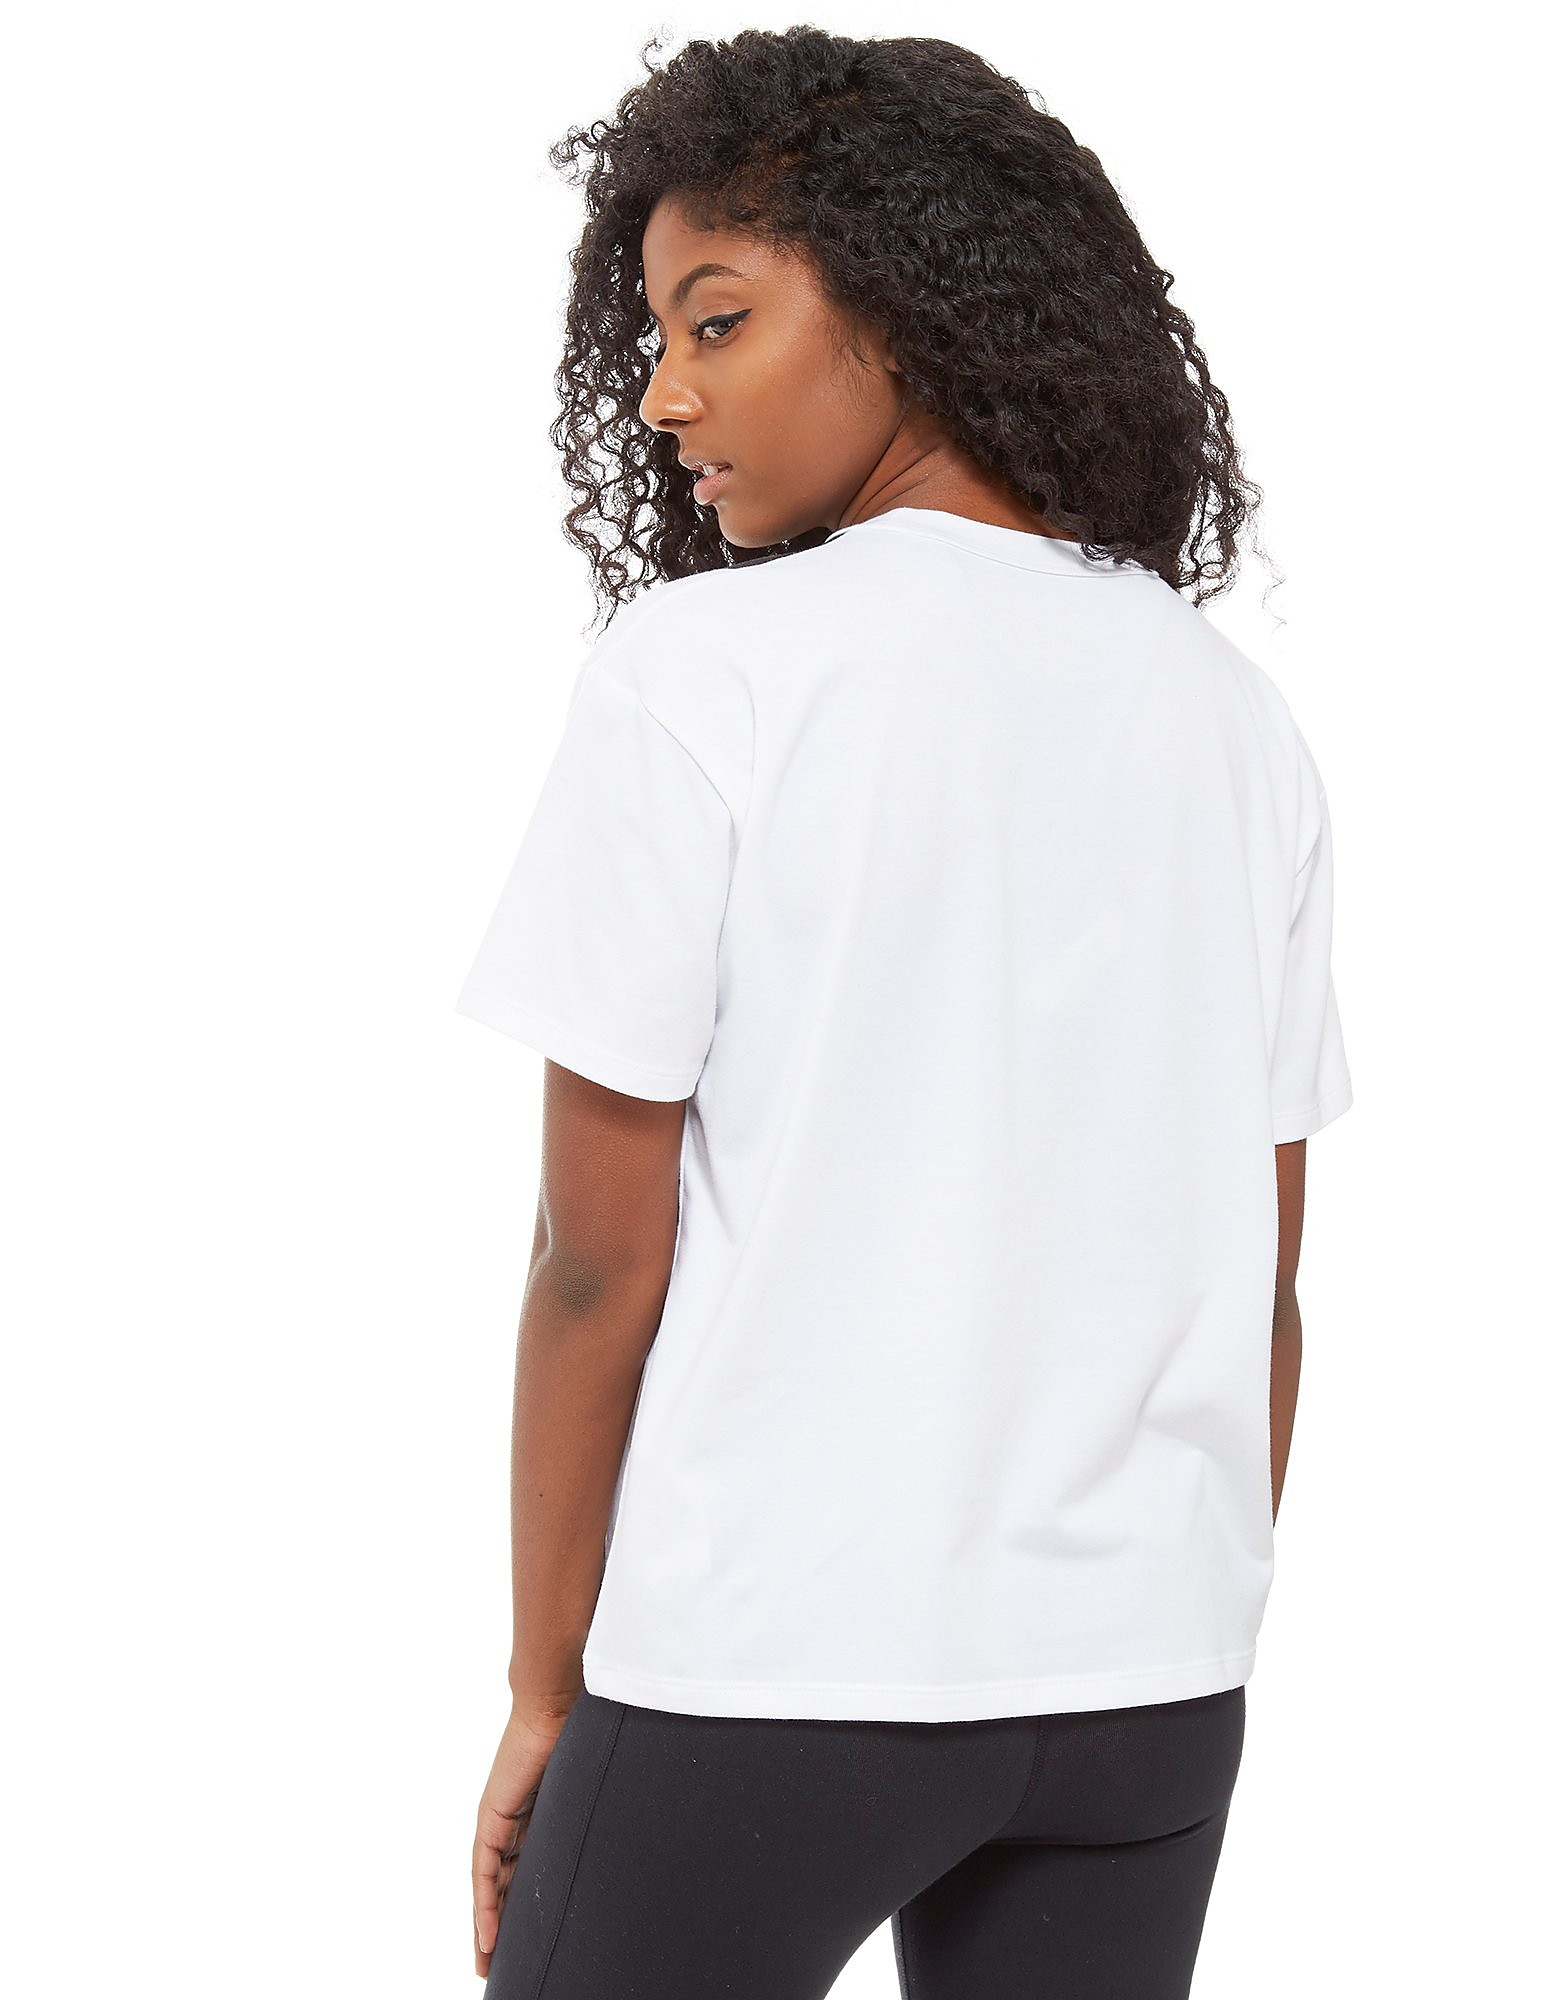 Under Armour Short Sleeve Graphic T-Shirt